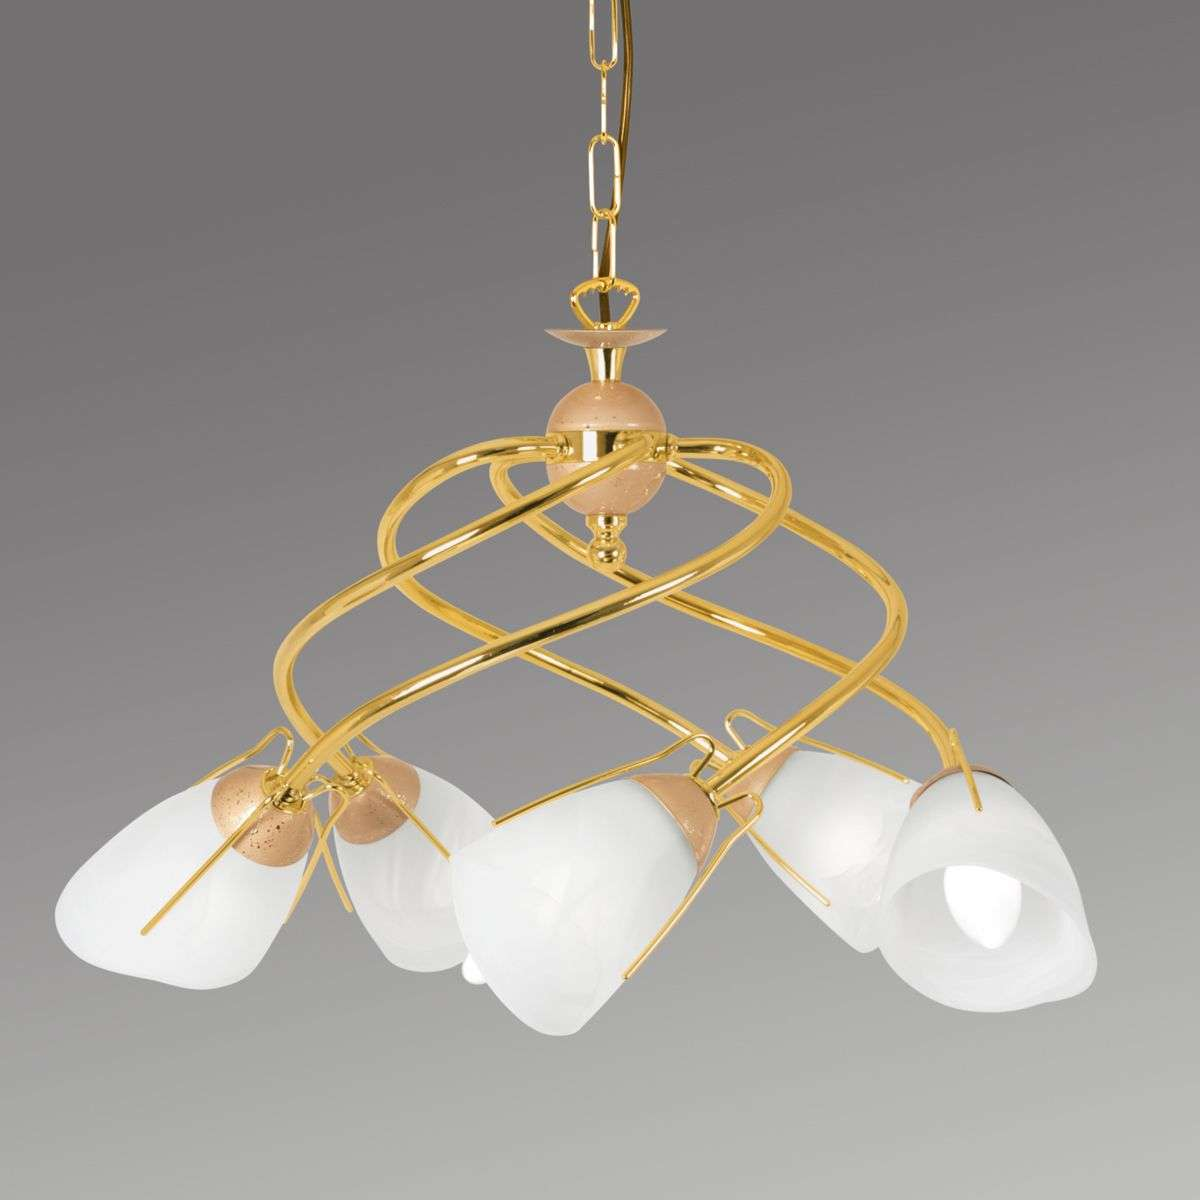 Gold coloured pendant light rondo lights gold coloured pendant light rondo 6089045 31 aloadofball Choice Image